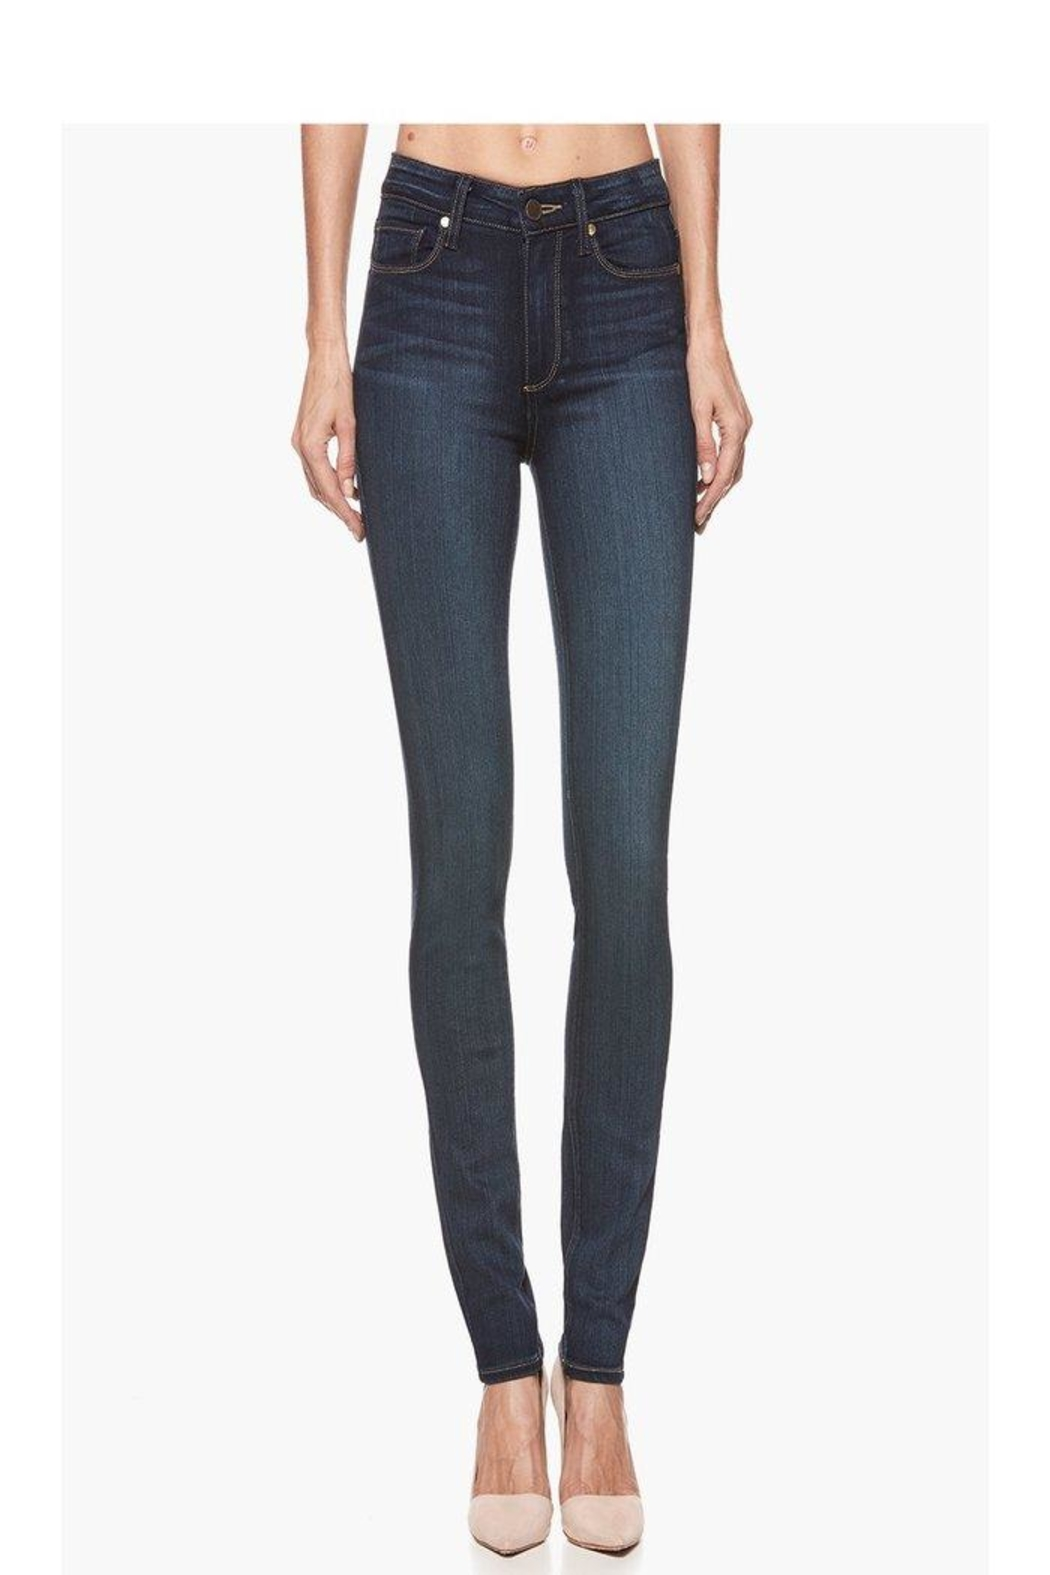 Paige Hoxton Vista Skinny - Front Cropped Image